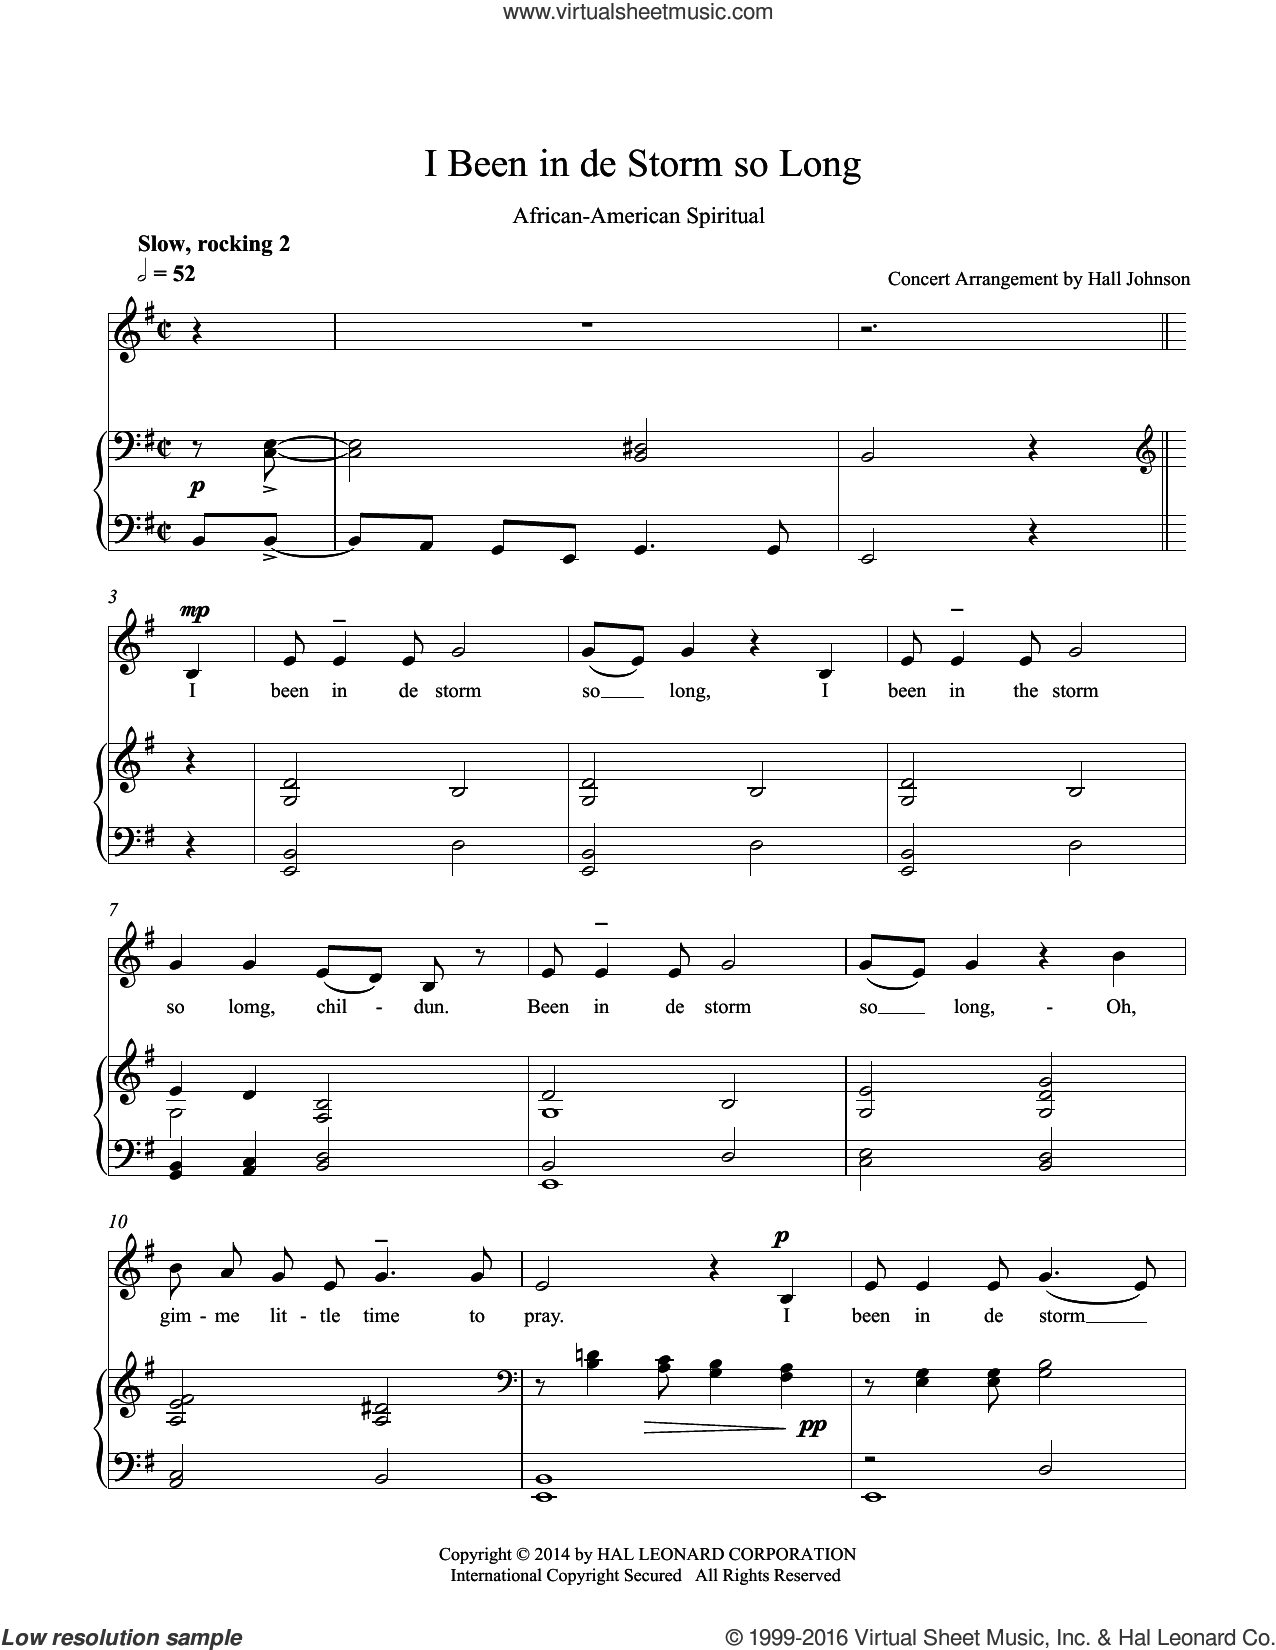 I Been in de Storm So Long (E minor) sheet music for voice and piano by Hall Johnson, classical score, intermediate. Score Image Preview.